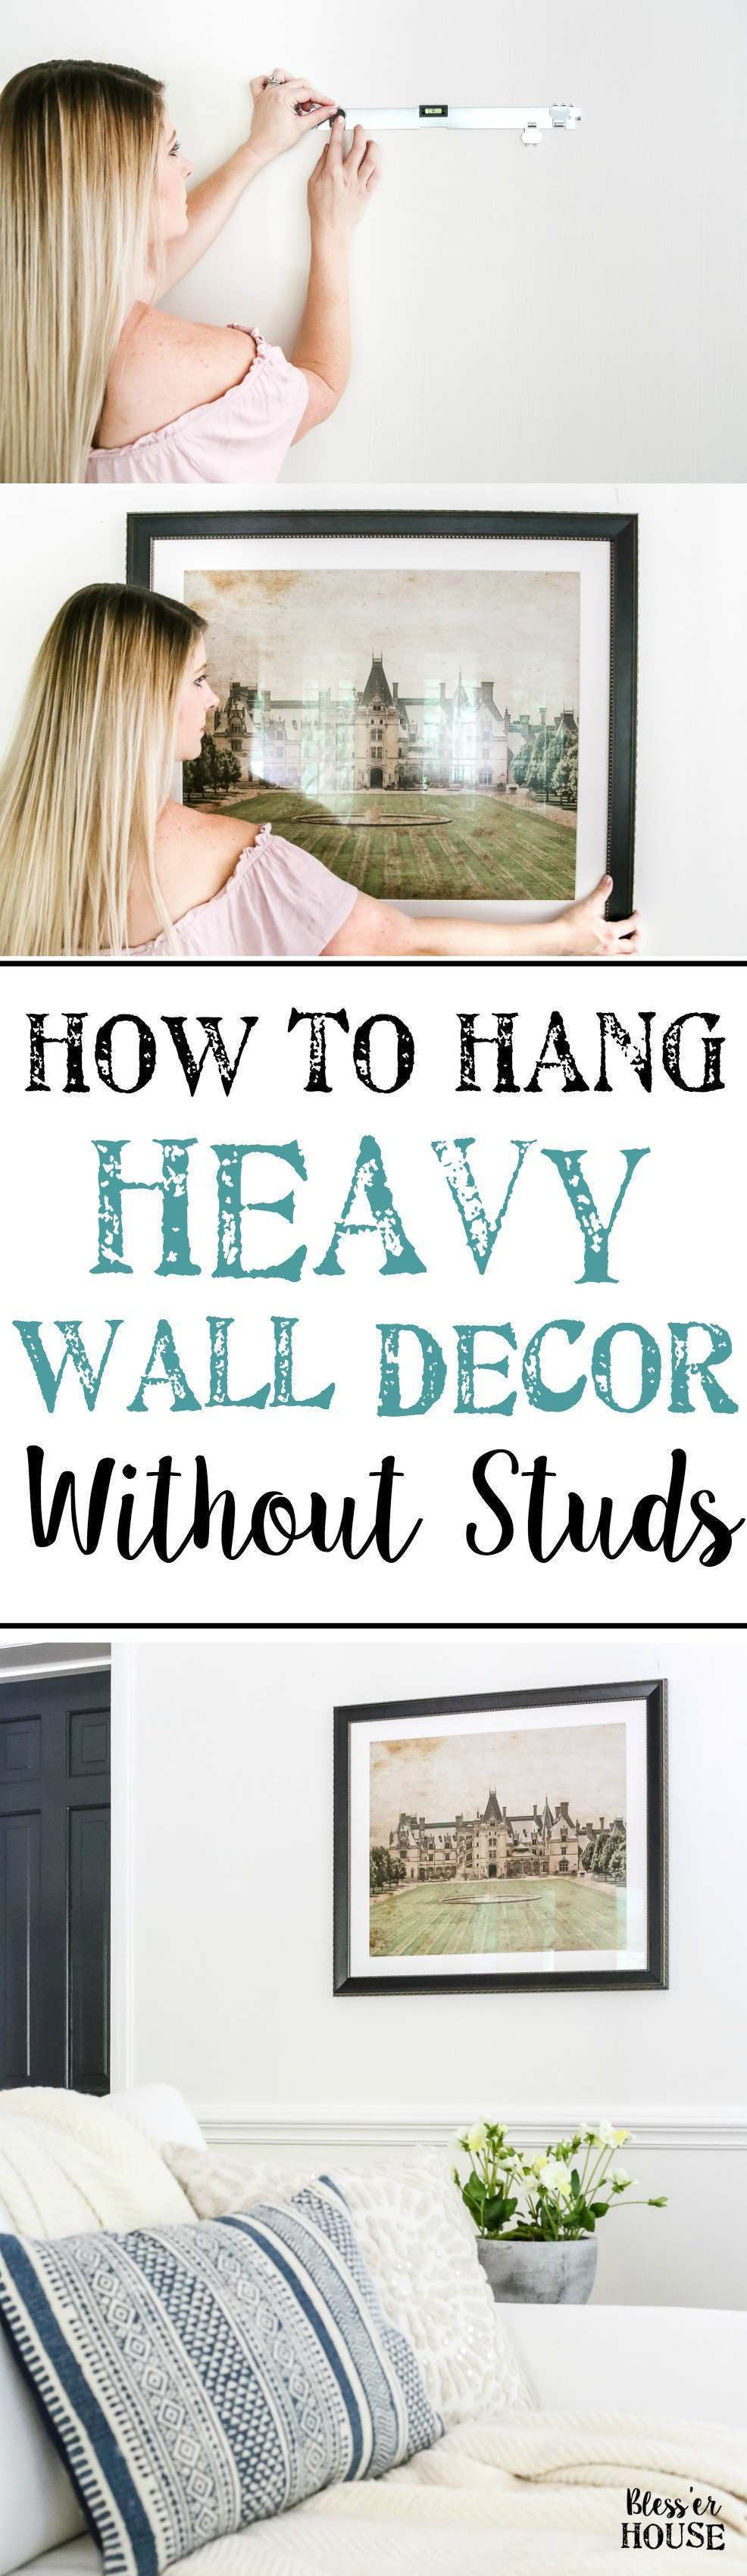 How to Hang Heavy Wall Decor Without Studs Bless er House